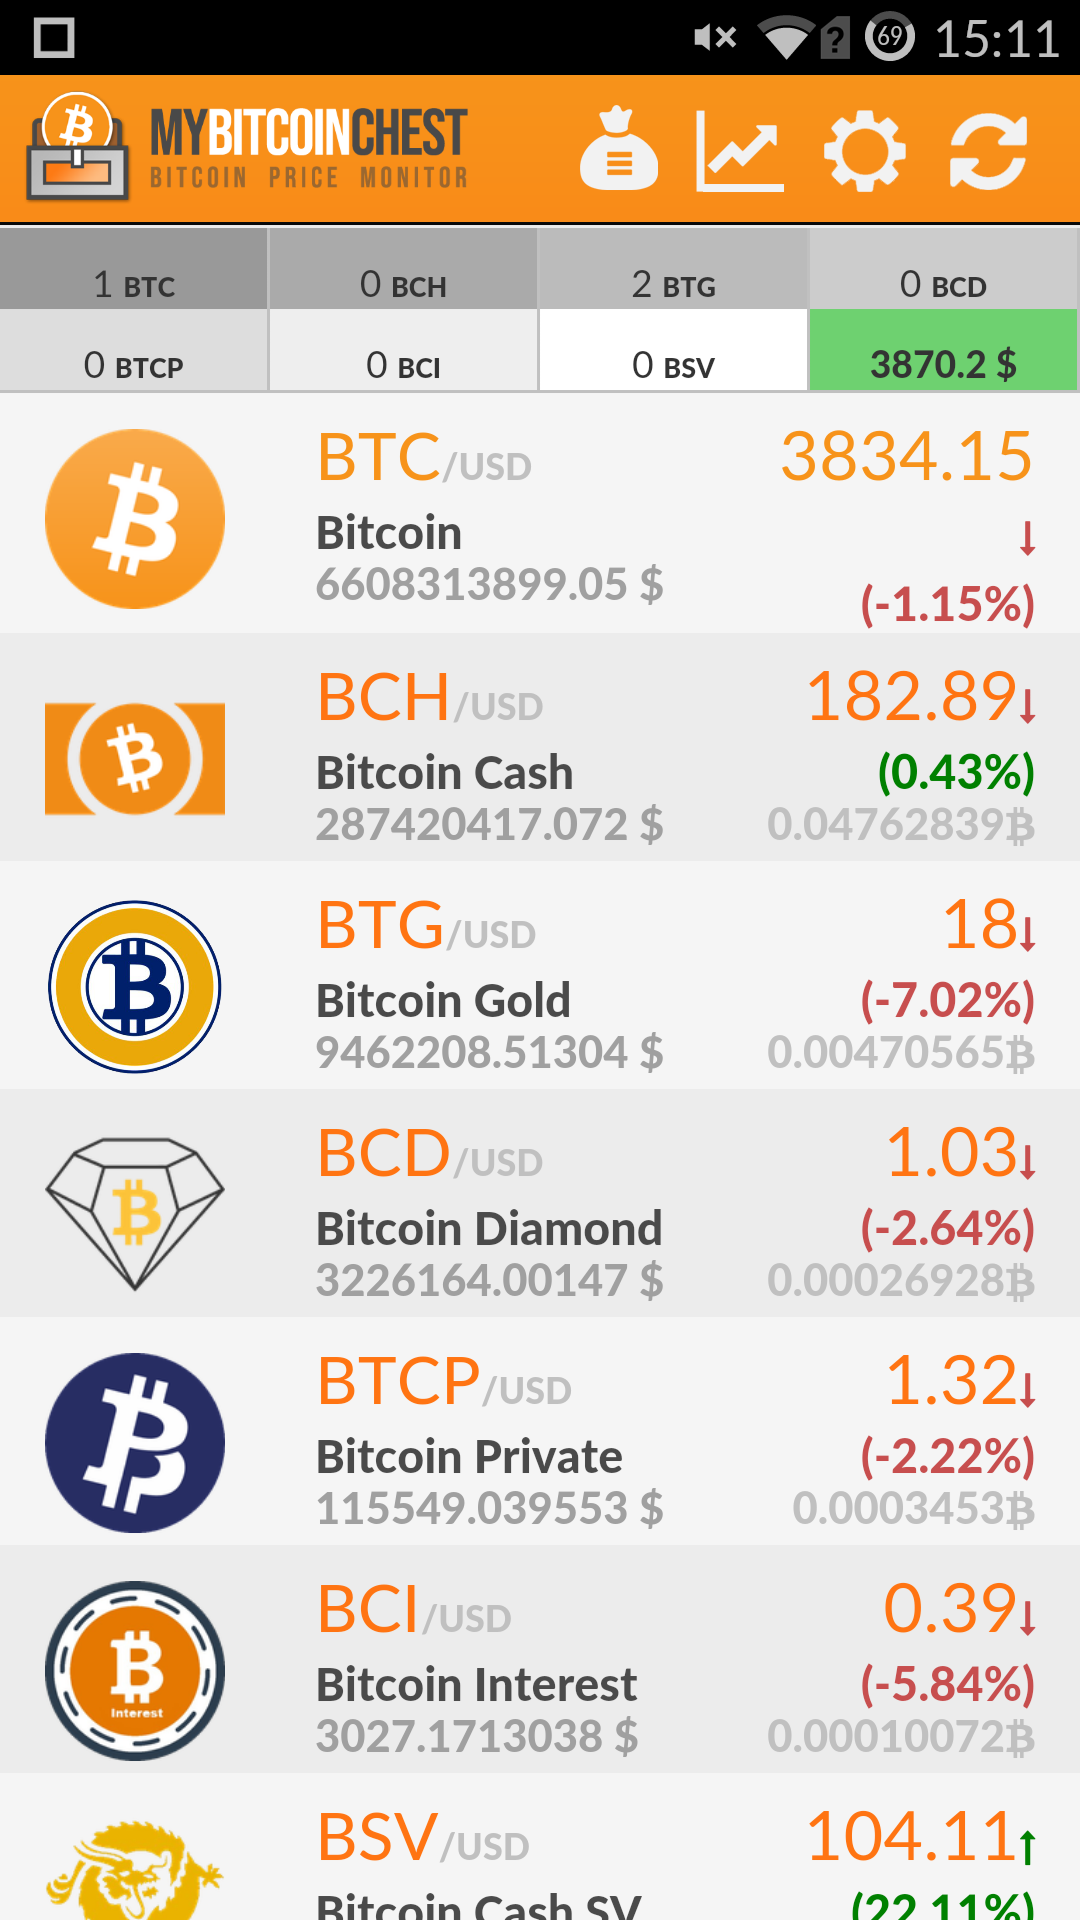 My Bitcoin Chest - Bitcoin Price Monitor